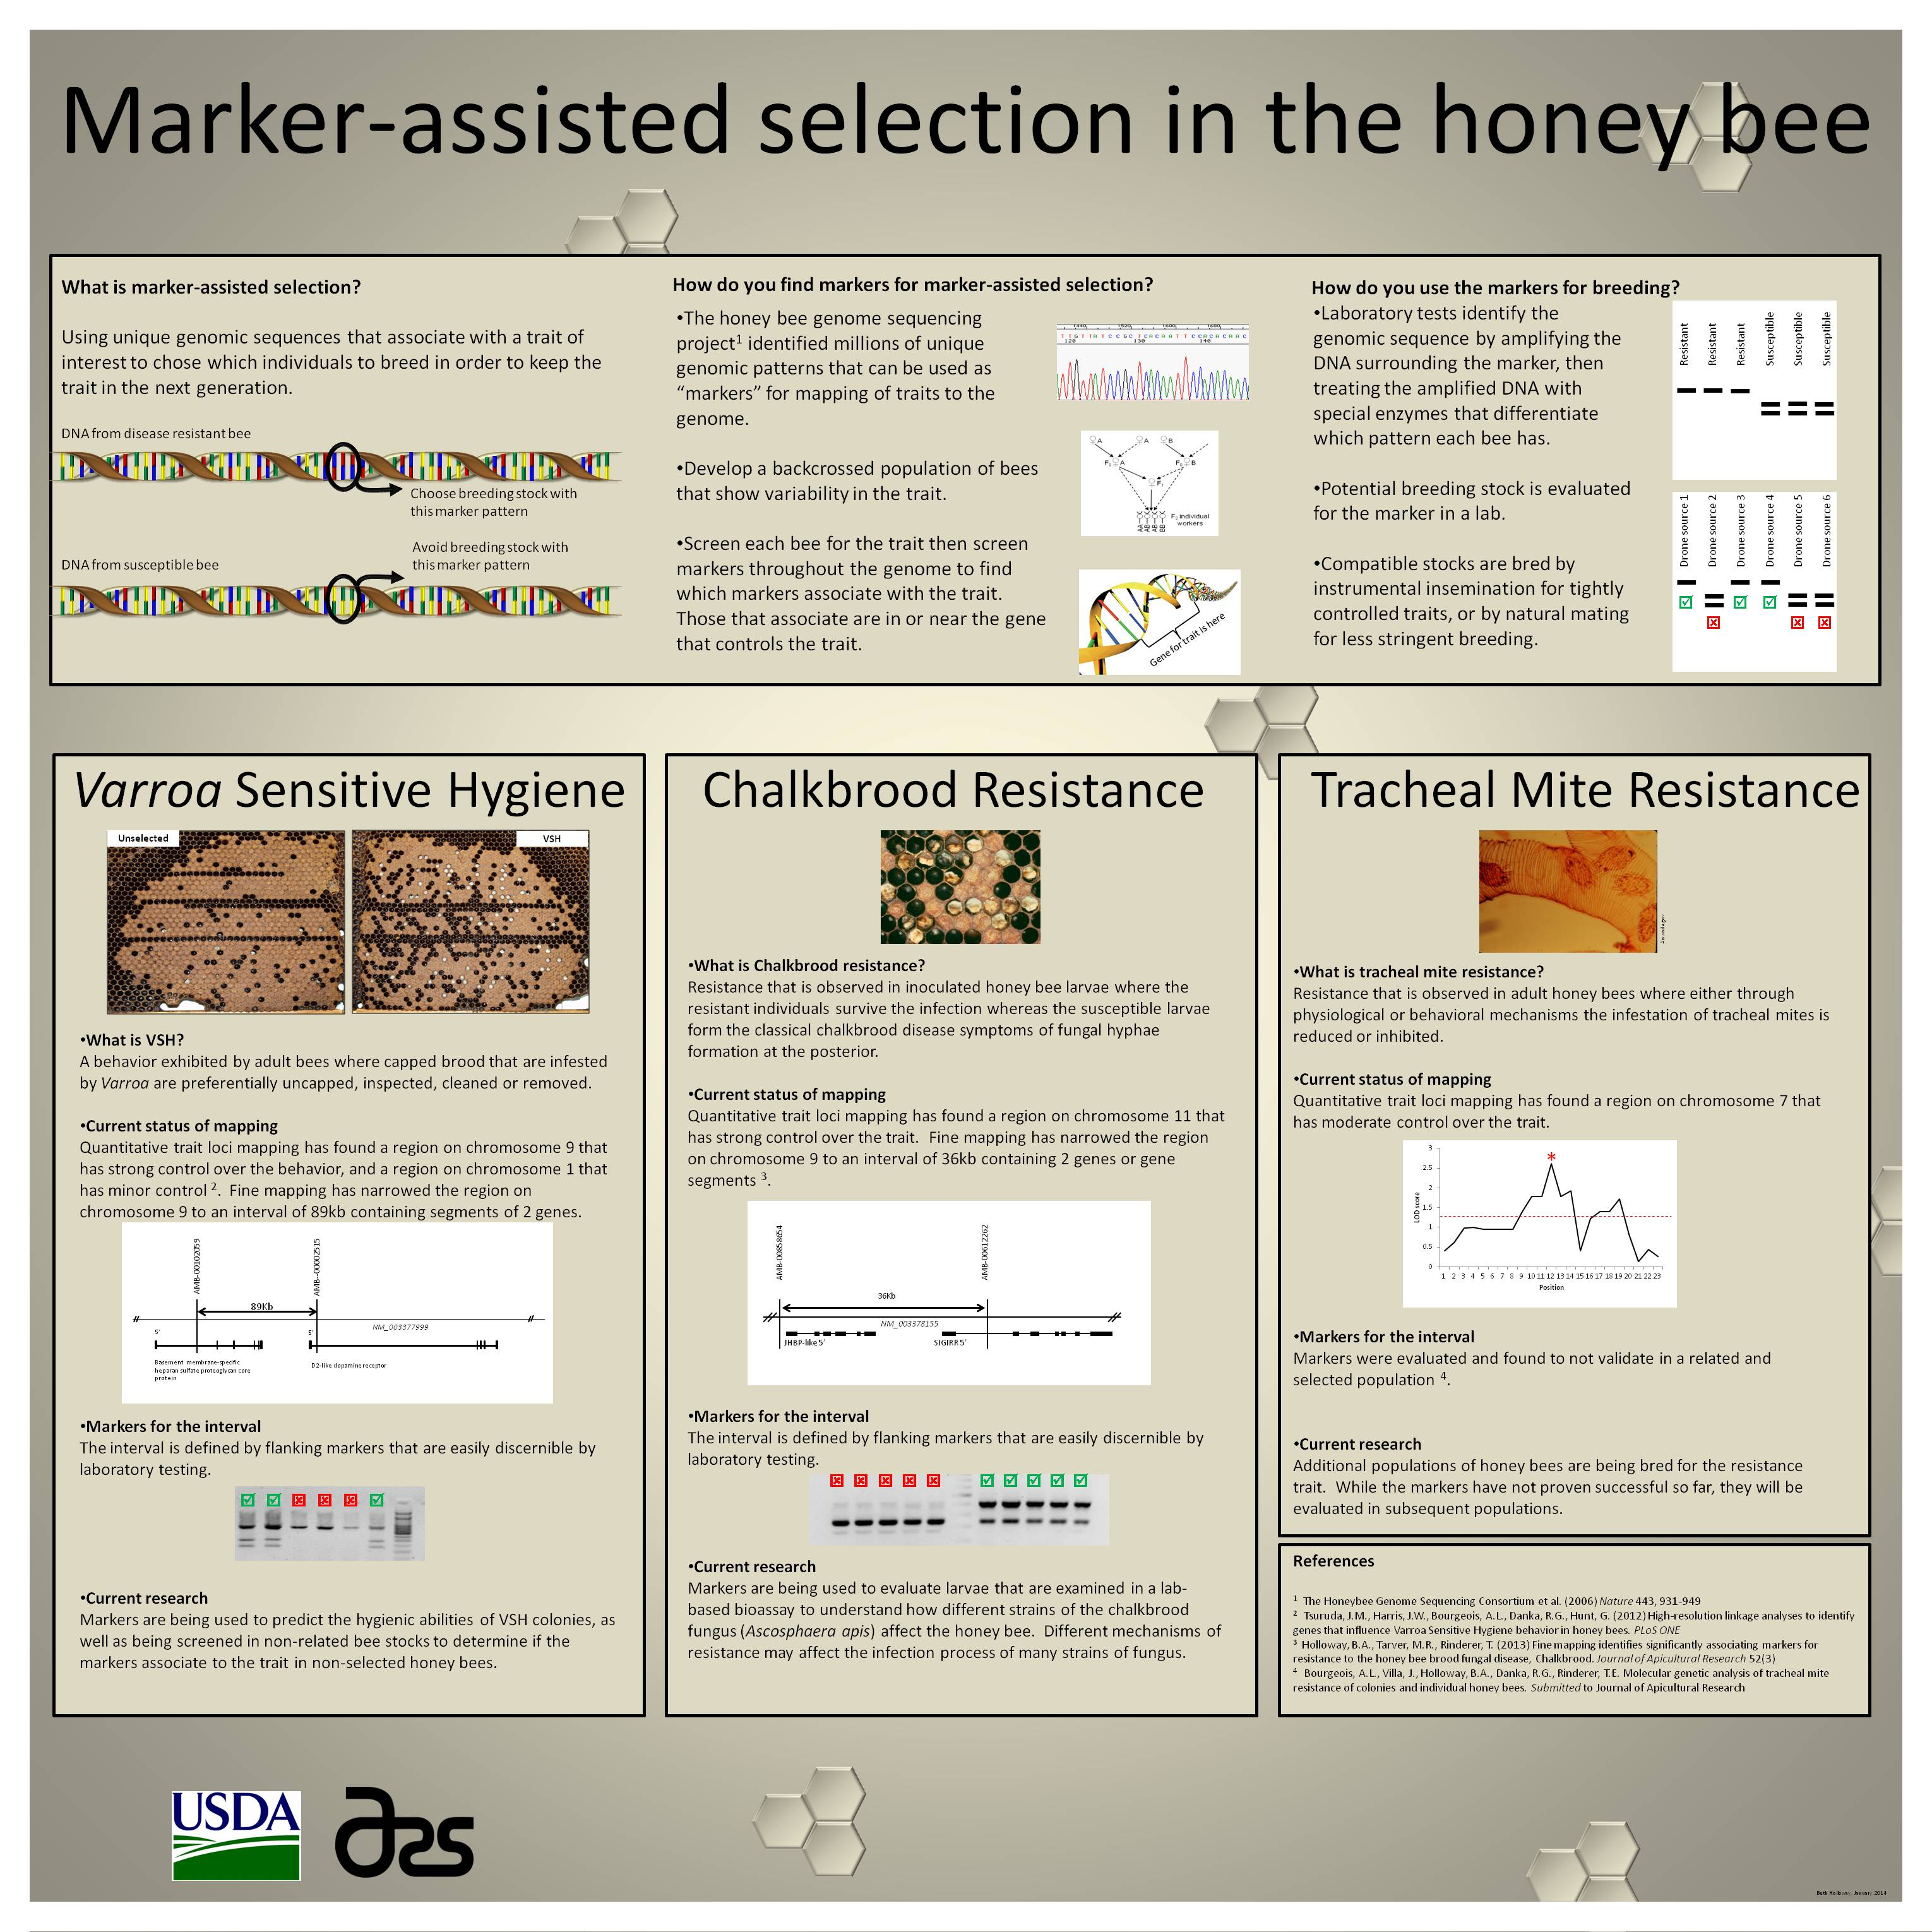 Marker-assisted selection in the honey bee